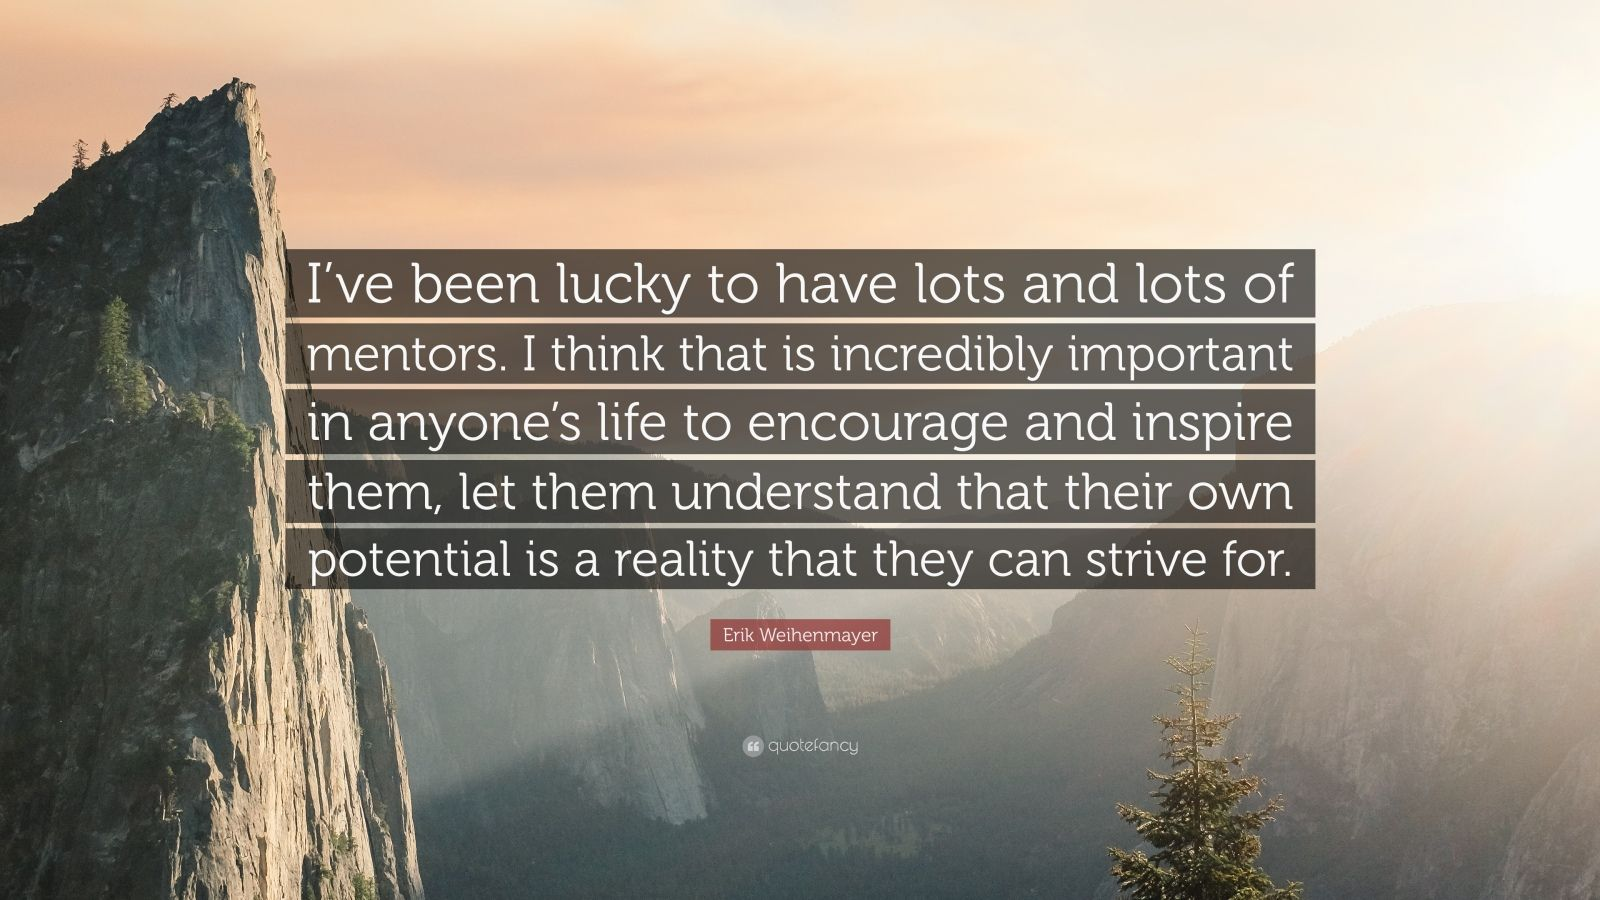 """Erik Weihenmayer Quote: """"I've been lucky to have lots and lots of mentors. I think that is incredibly important in anyone's life to encourage and inspire them, let them understand that their own potential is a reality that they can strive for."""""""